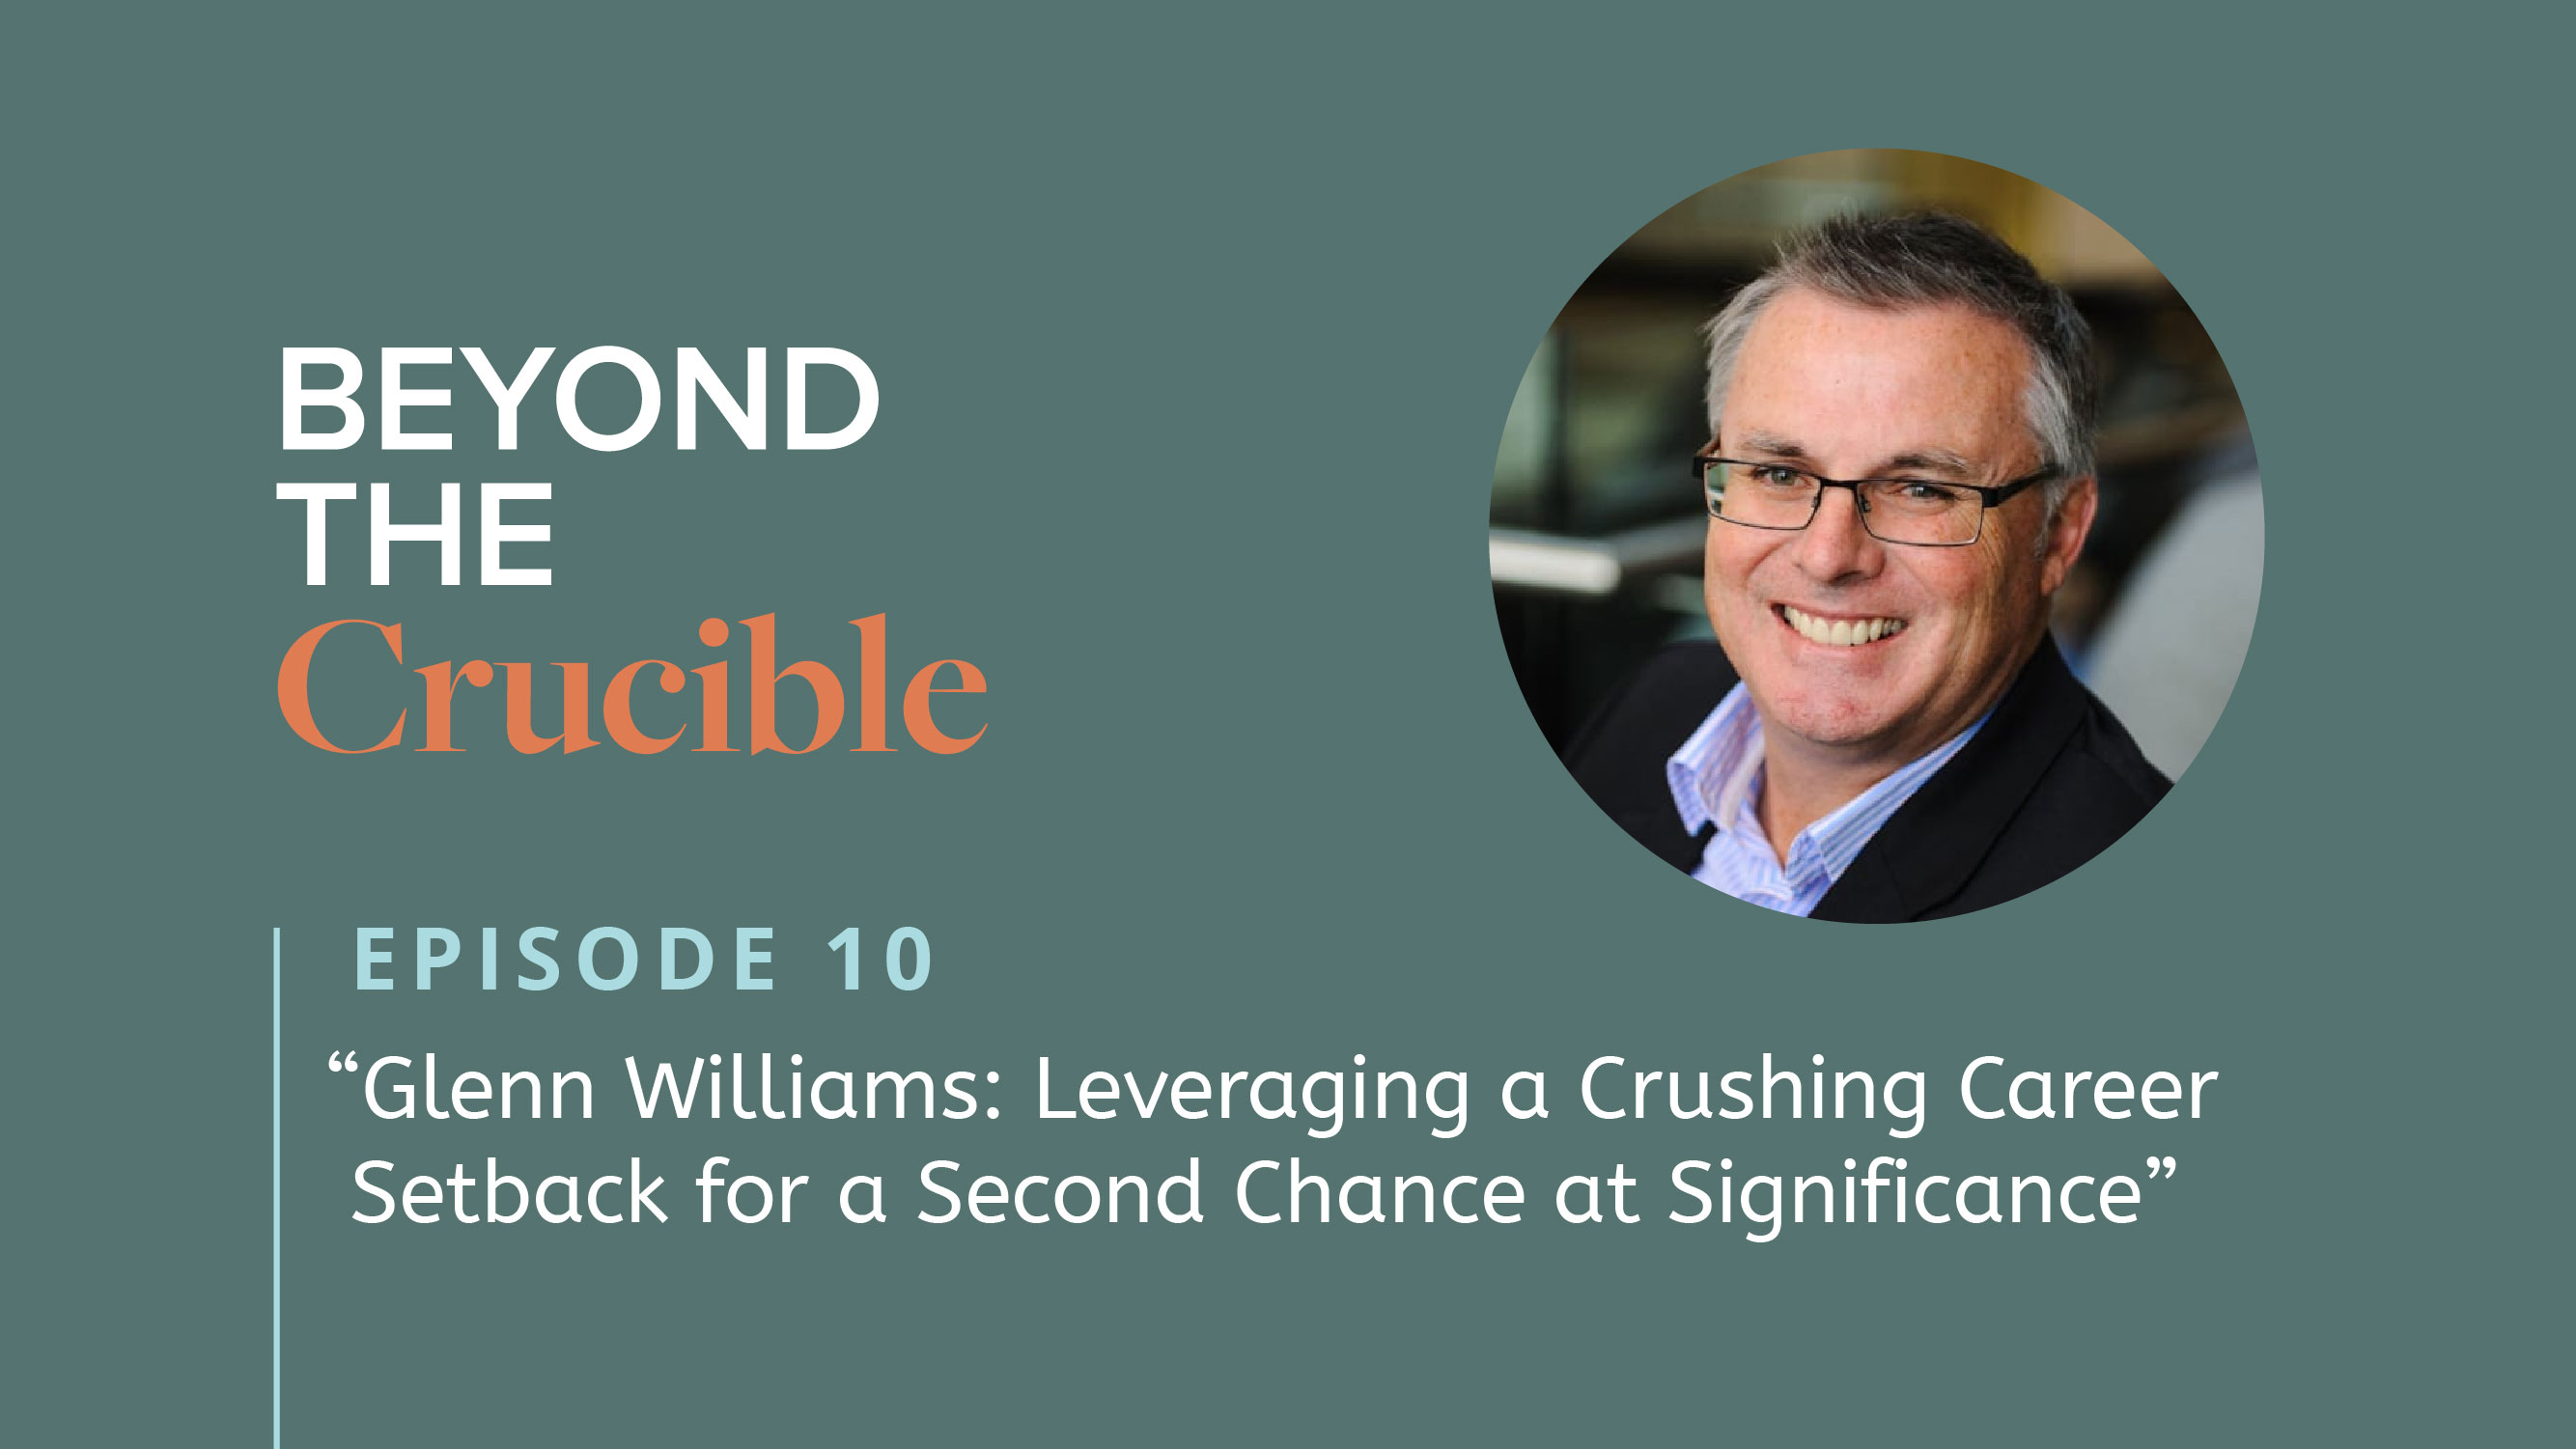 Glenn Williams: Leveraging a Crushing Career Setback for a Second Chance at Significance #10